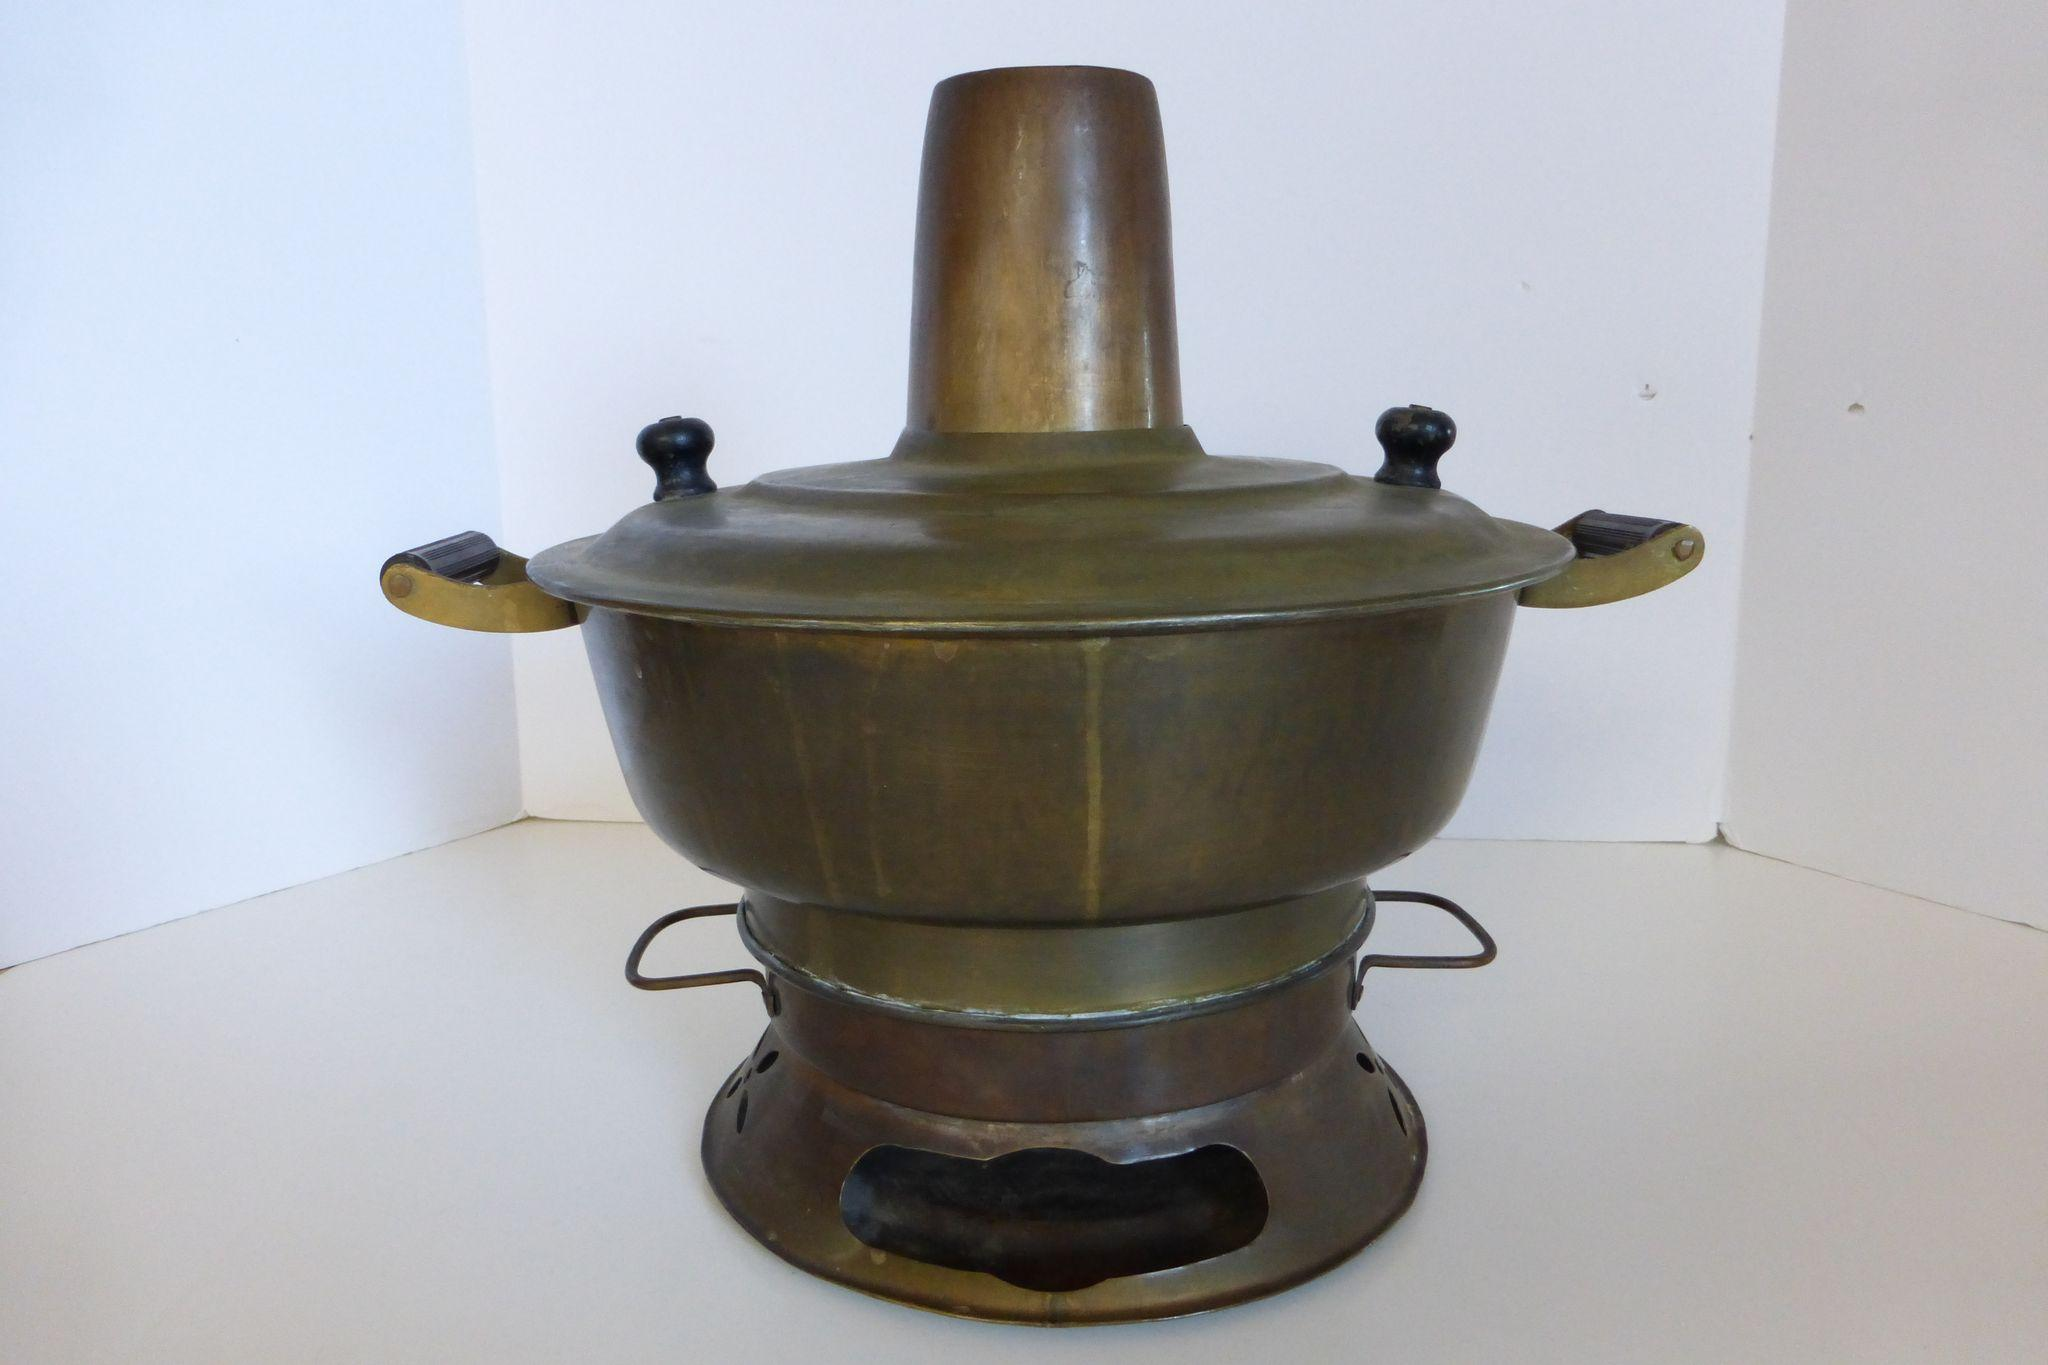 Chinese Hot Pot Cookware - Bing images